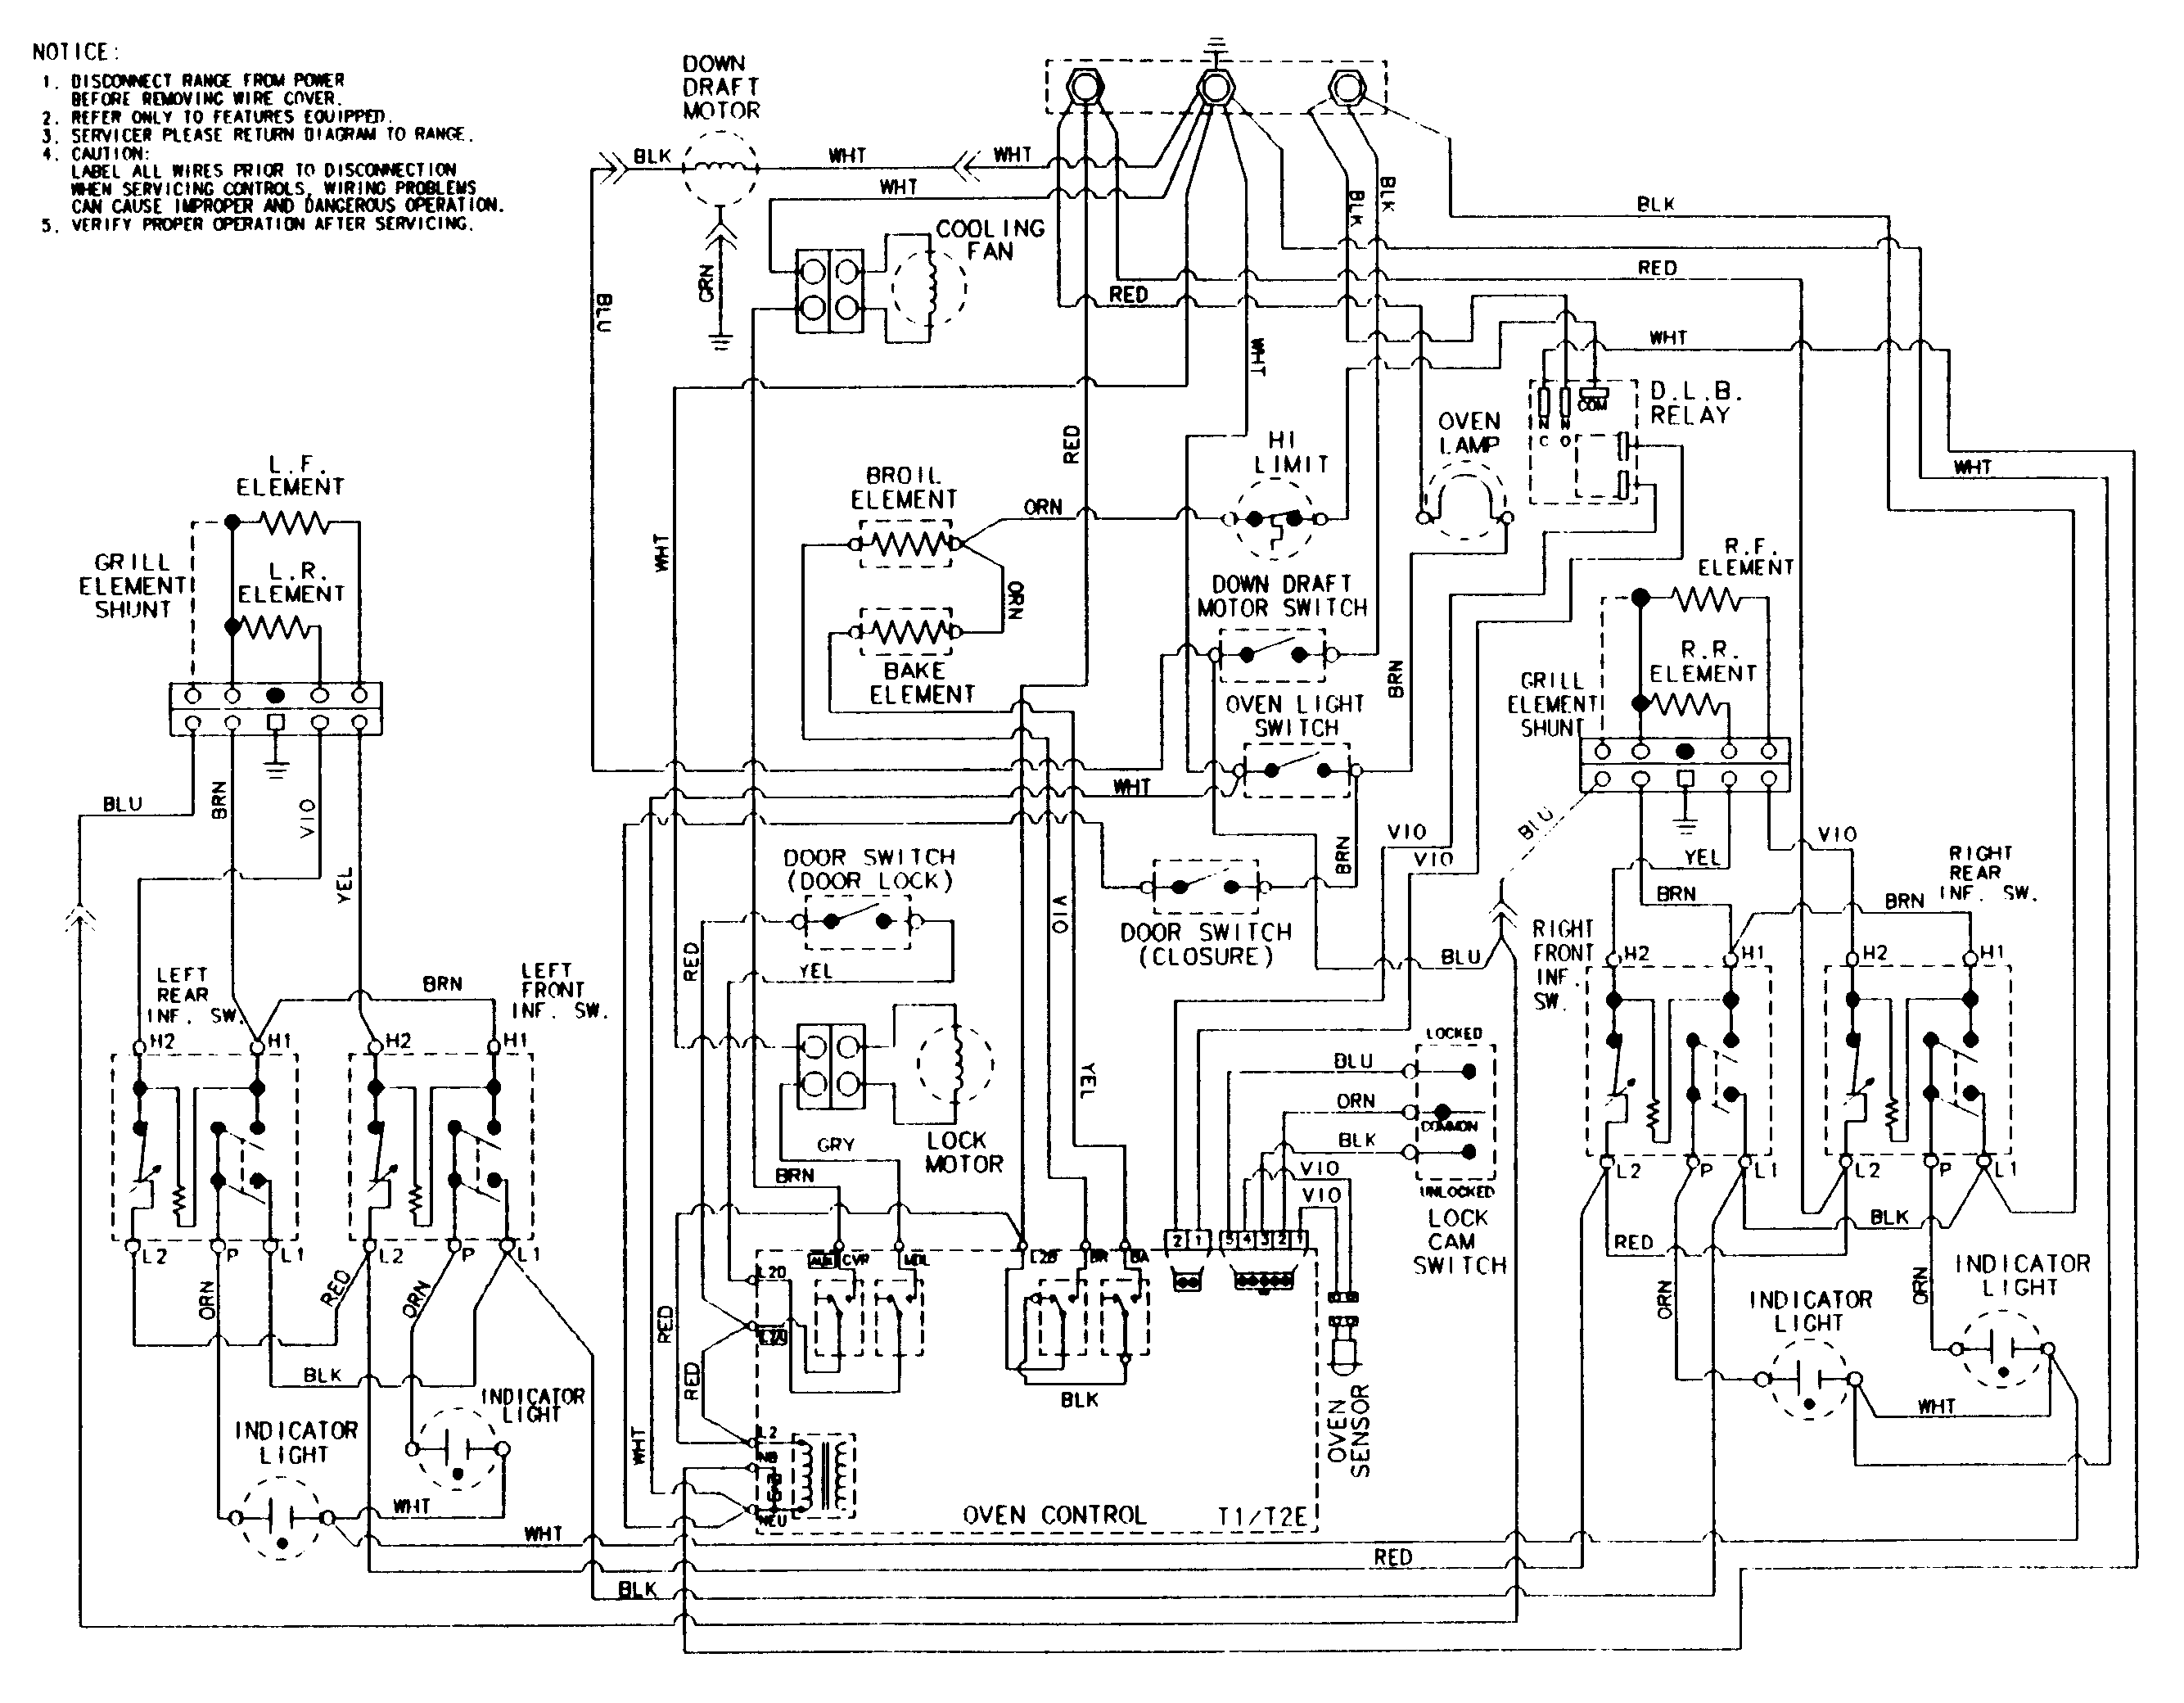 Oven Parts furthermore Control Panel Parts further Wiring Information Sve Bc Wc Ser Parts further Control Panel Parts besides Maxresdefault. on ge electric oven parts diagram